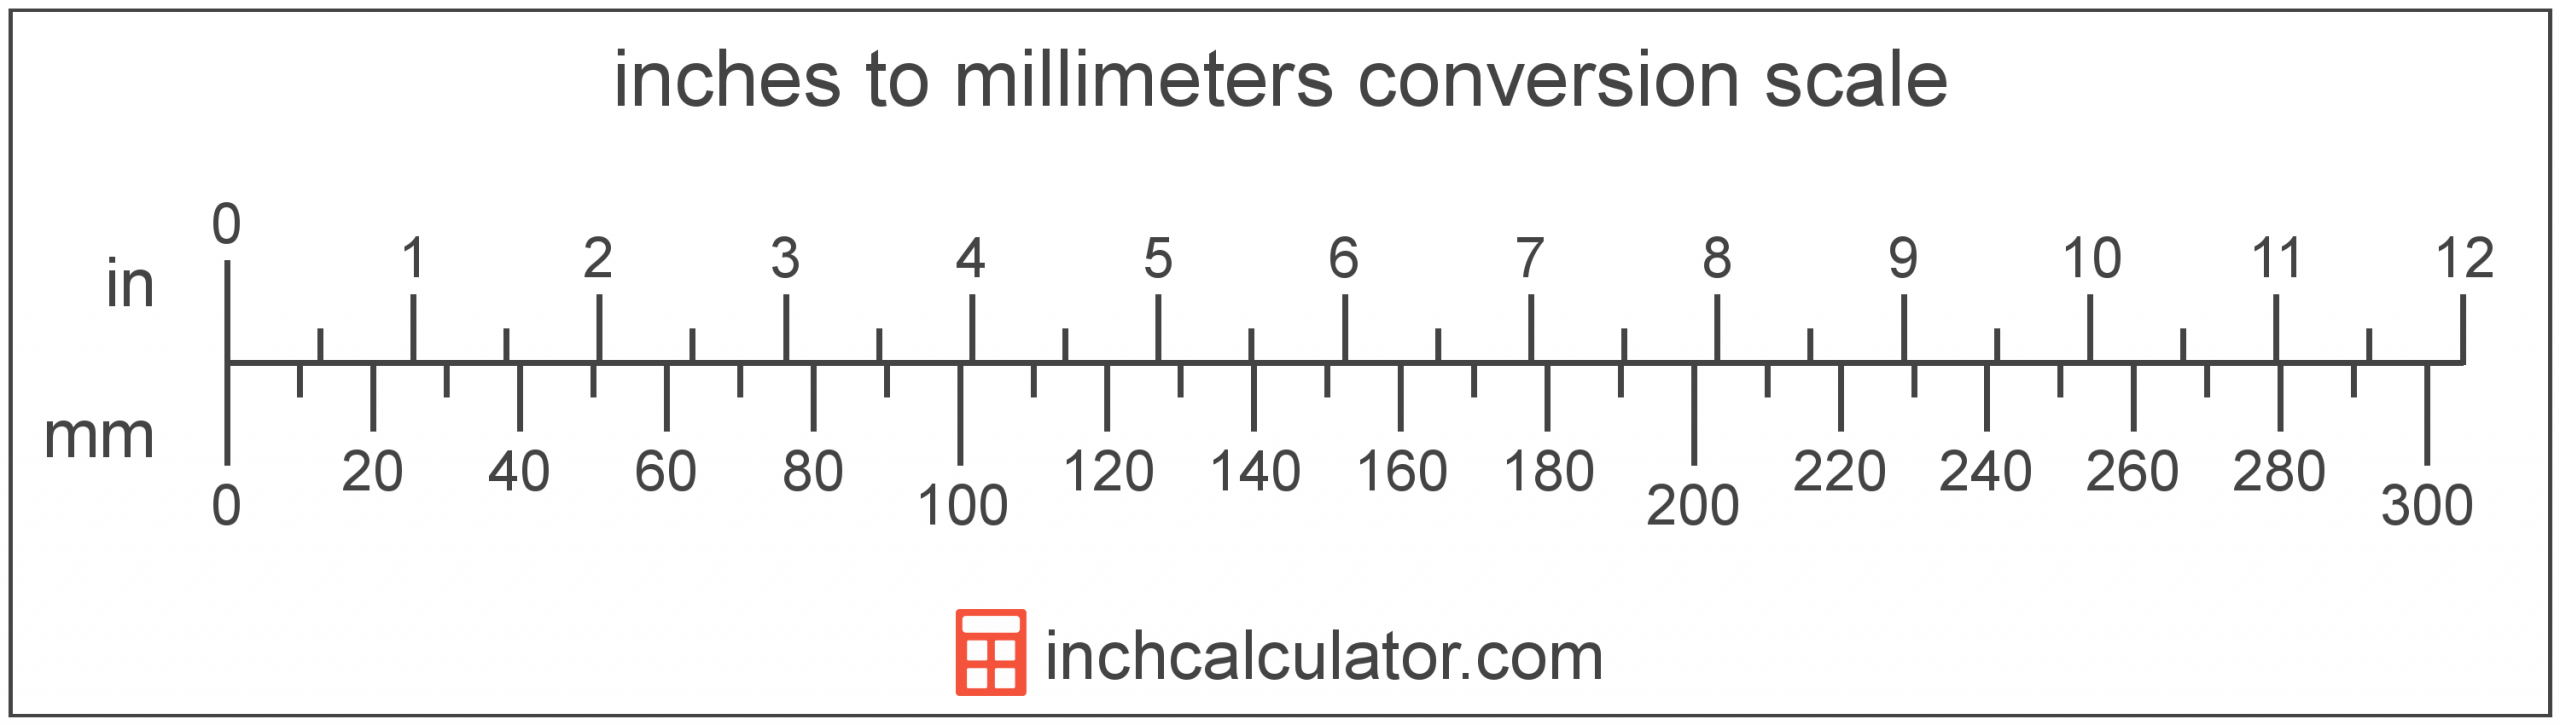 Mm To Inches Conversion (Millimeters To Inches) - Inch